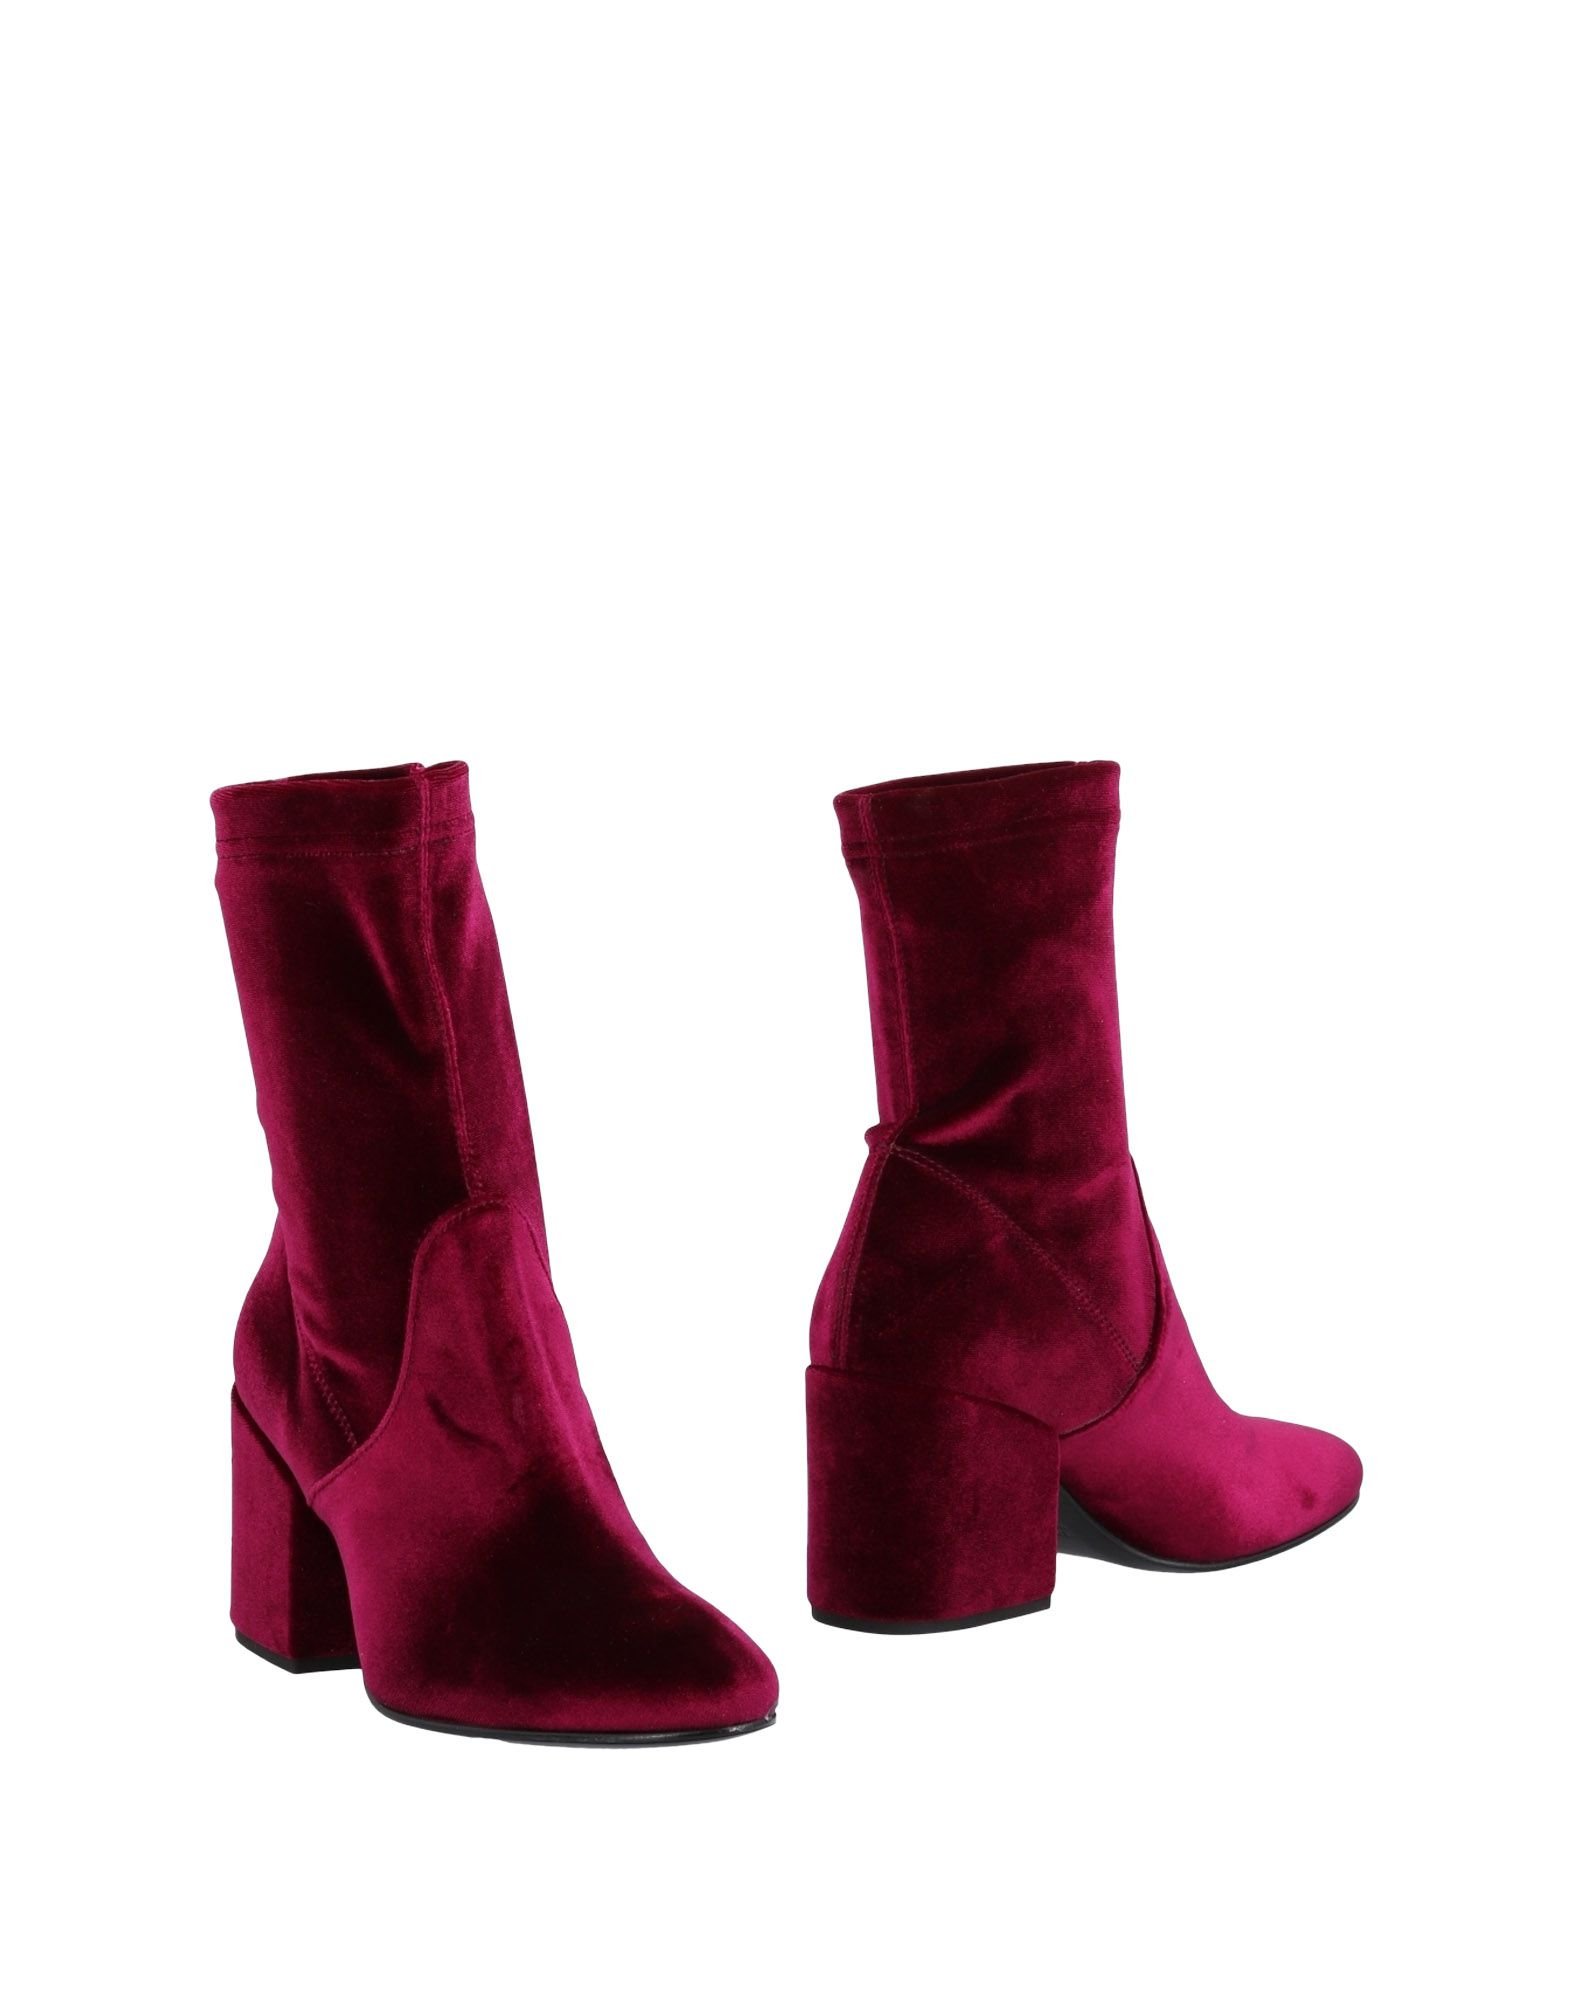 Strategia Ankle Ankle Boot - Women Strategia Ankle Ankle Boots online on  Canada - 11488799DI 8819ff